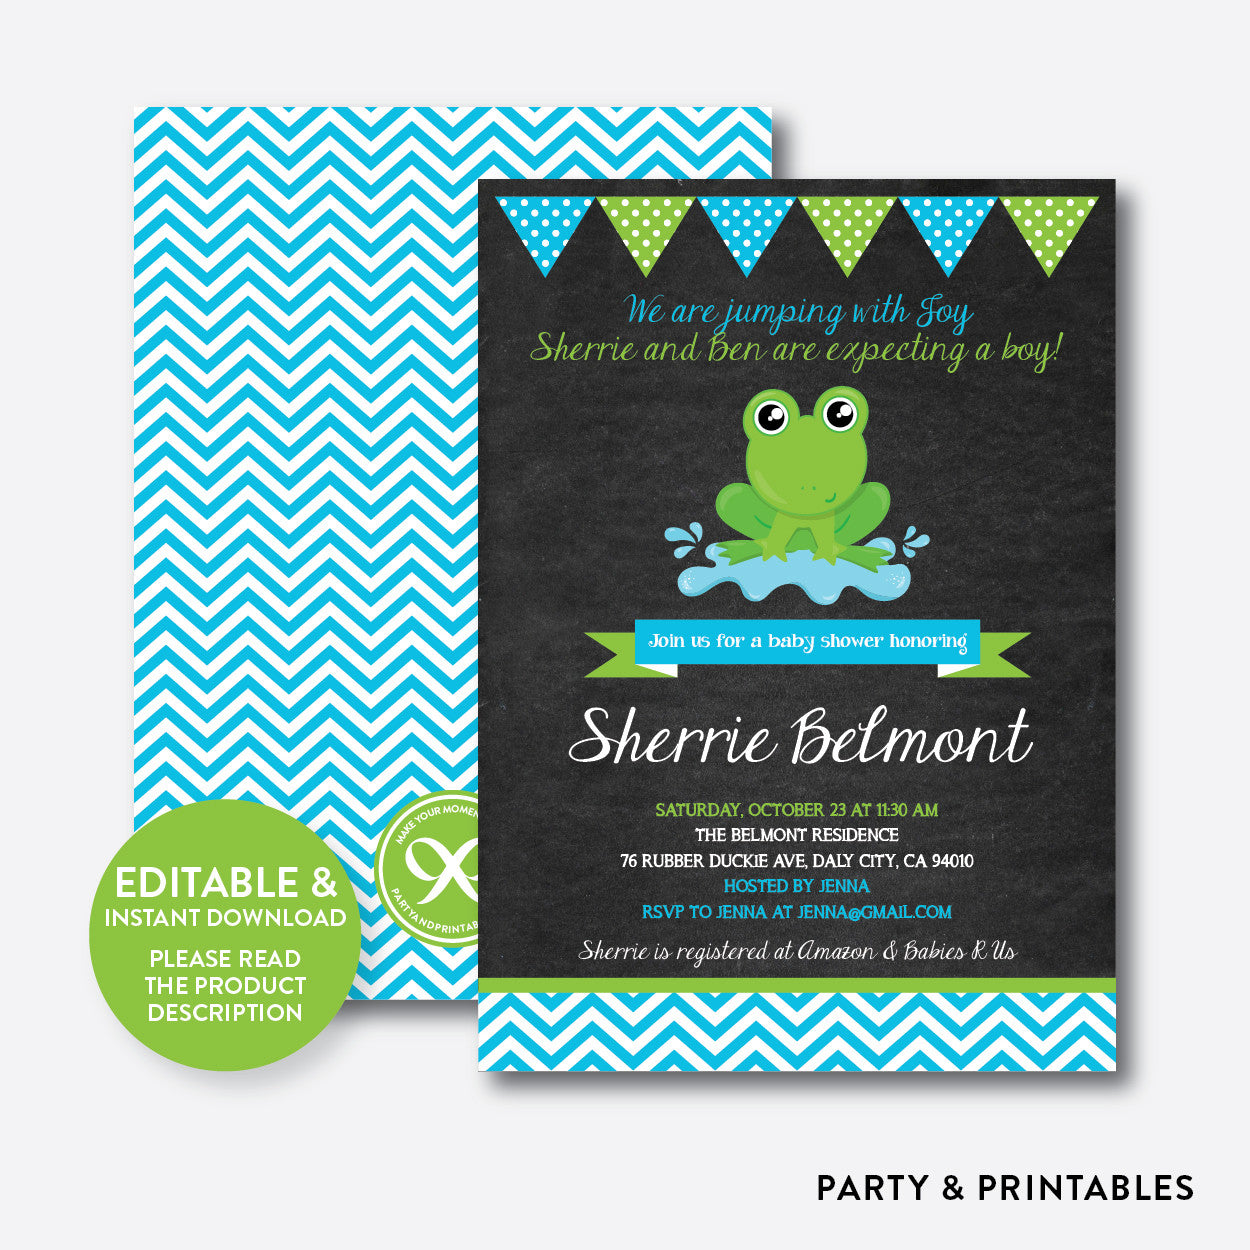 Frog Chalkboard Baby Shower Invitation / Editable / Instant Download (CBS.38), invitation - Party and Printables